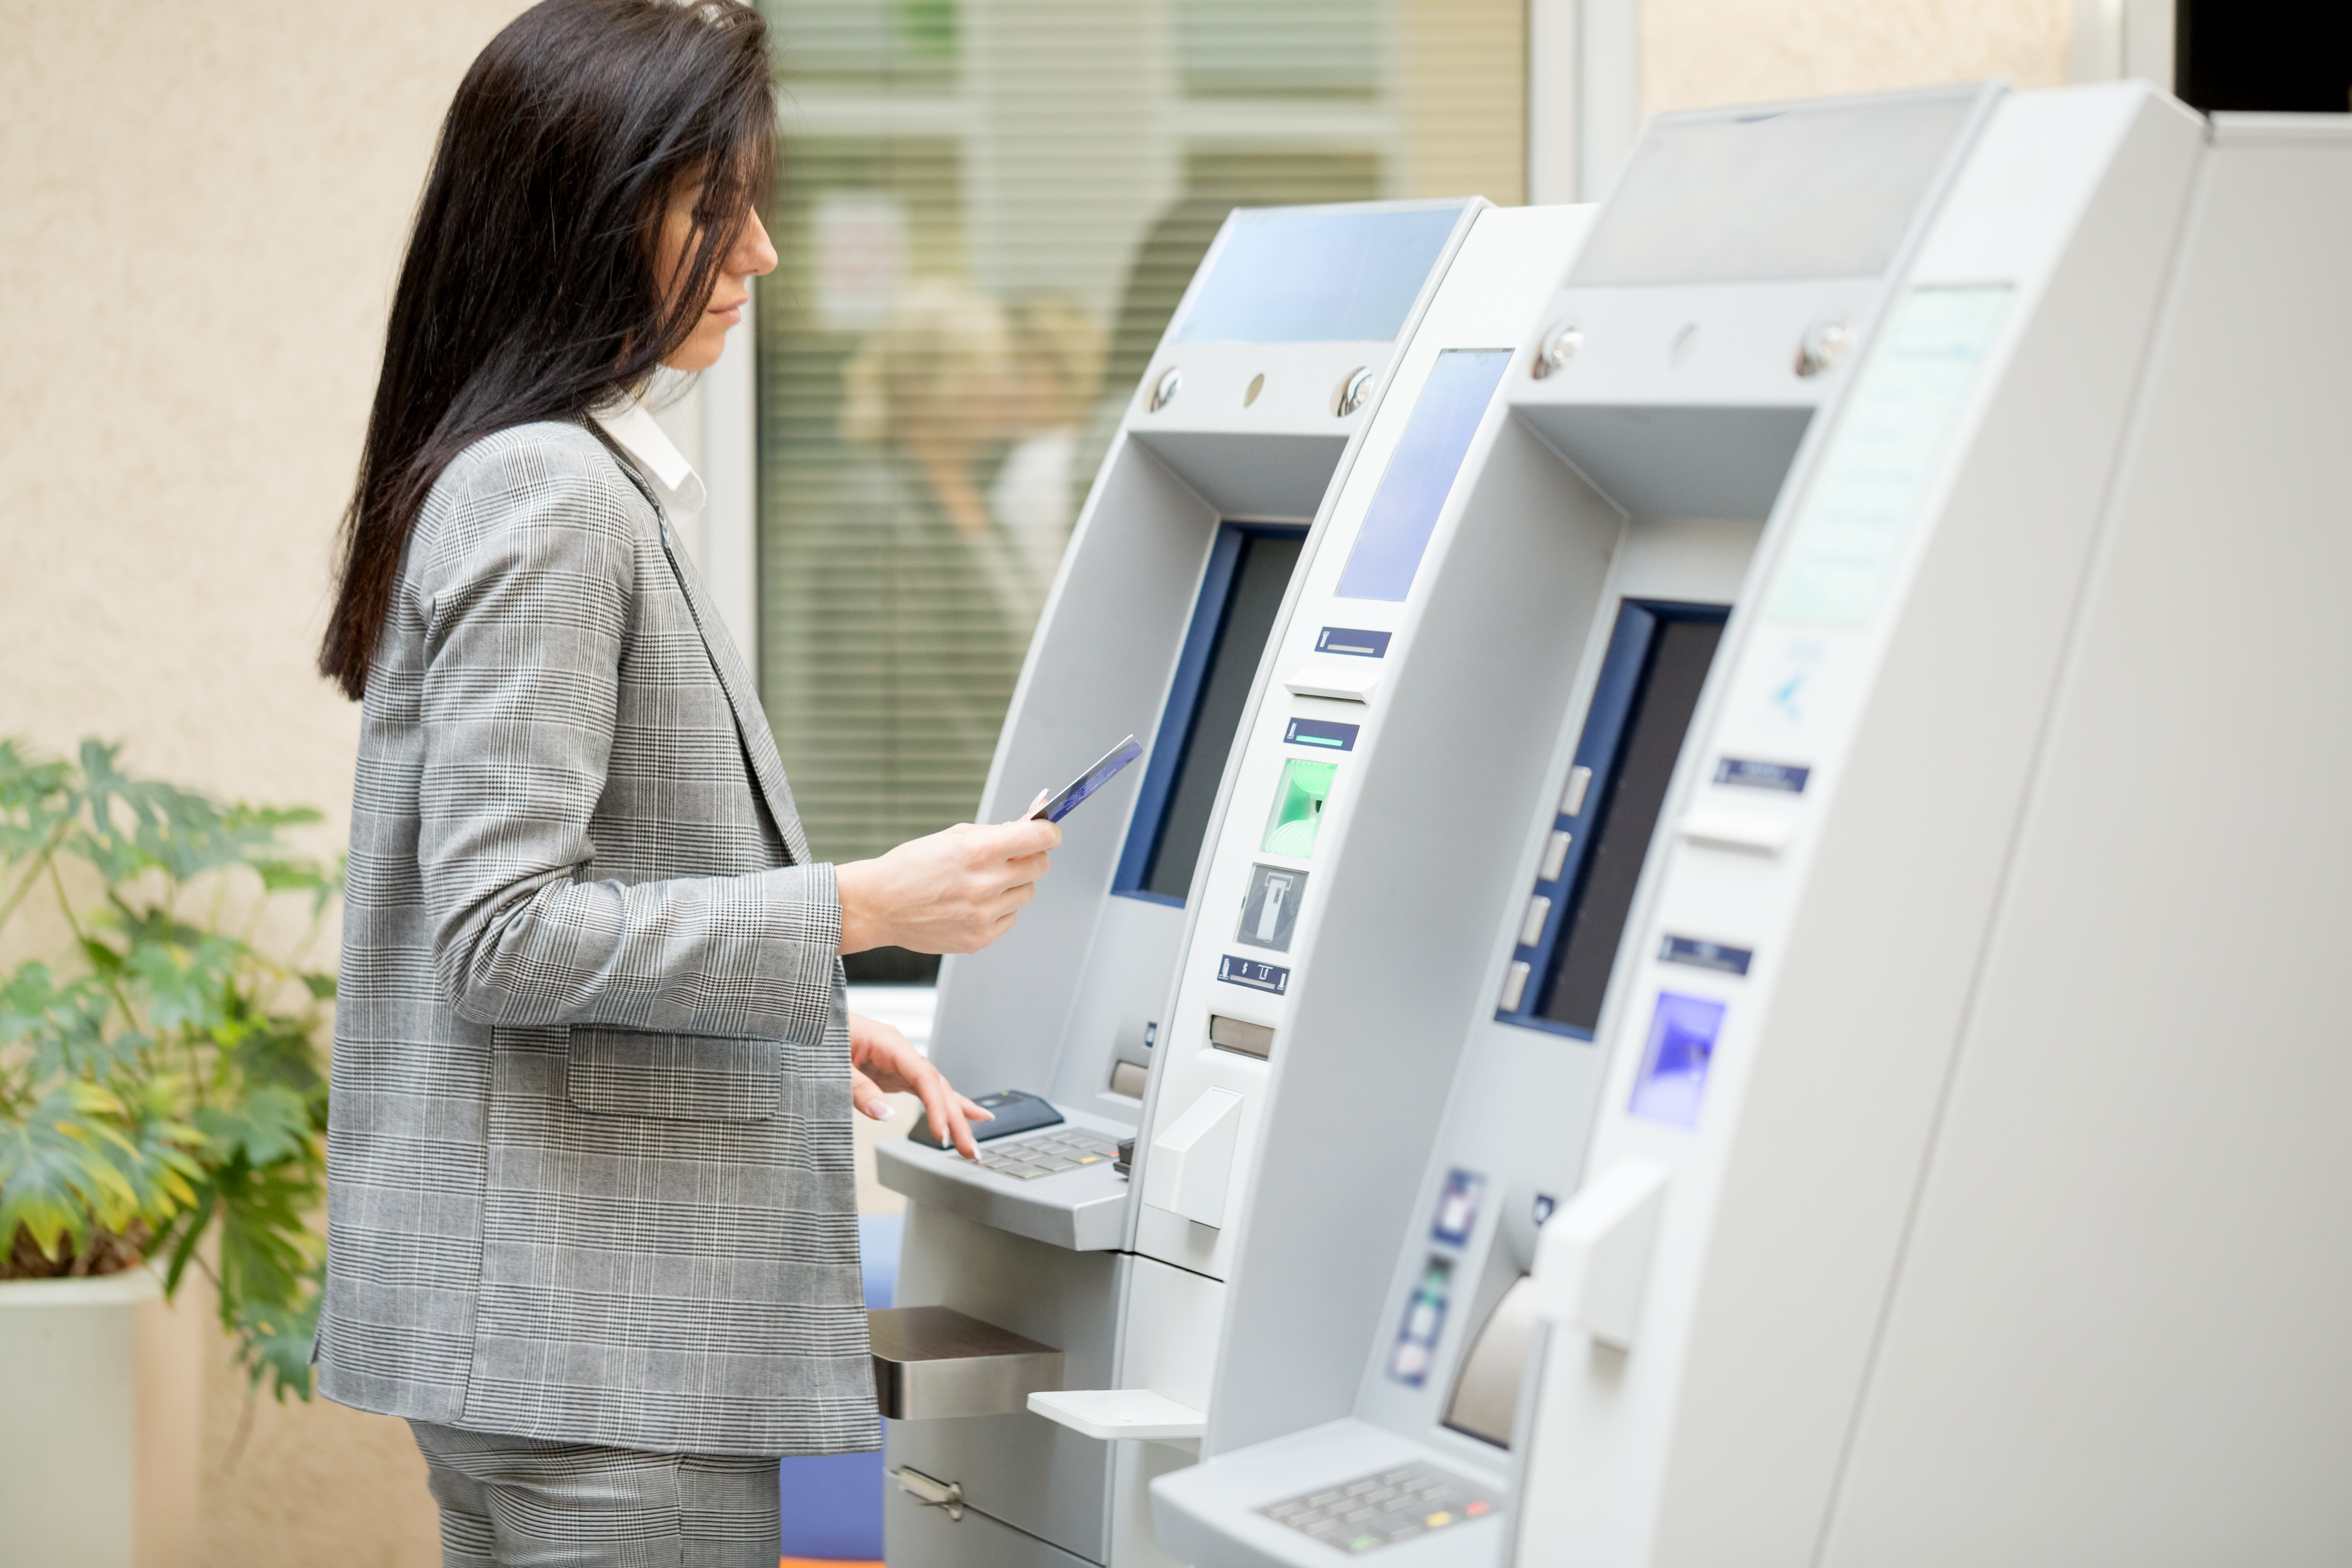 Do Golden 1 ATMs Allow You to Deposit With Cash Back?